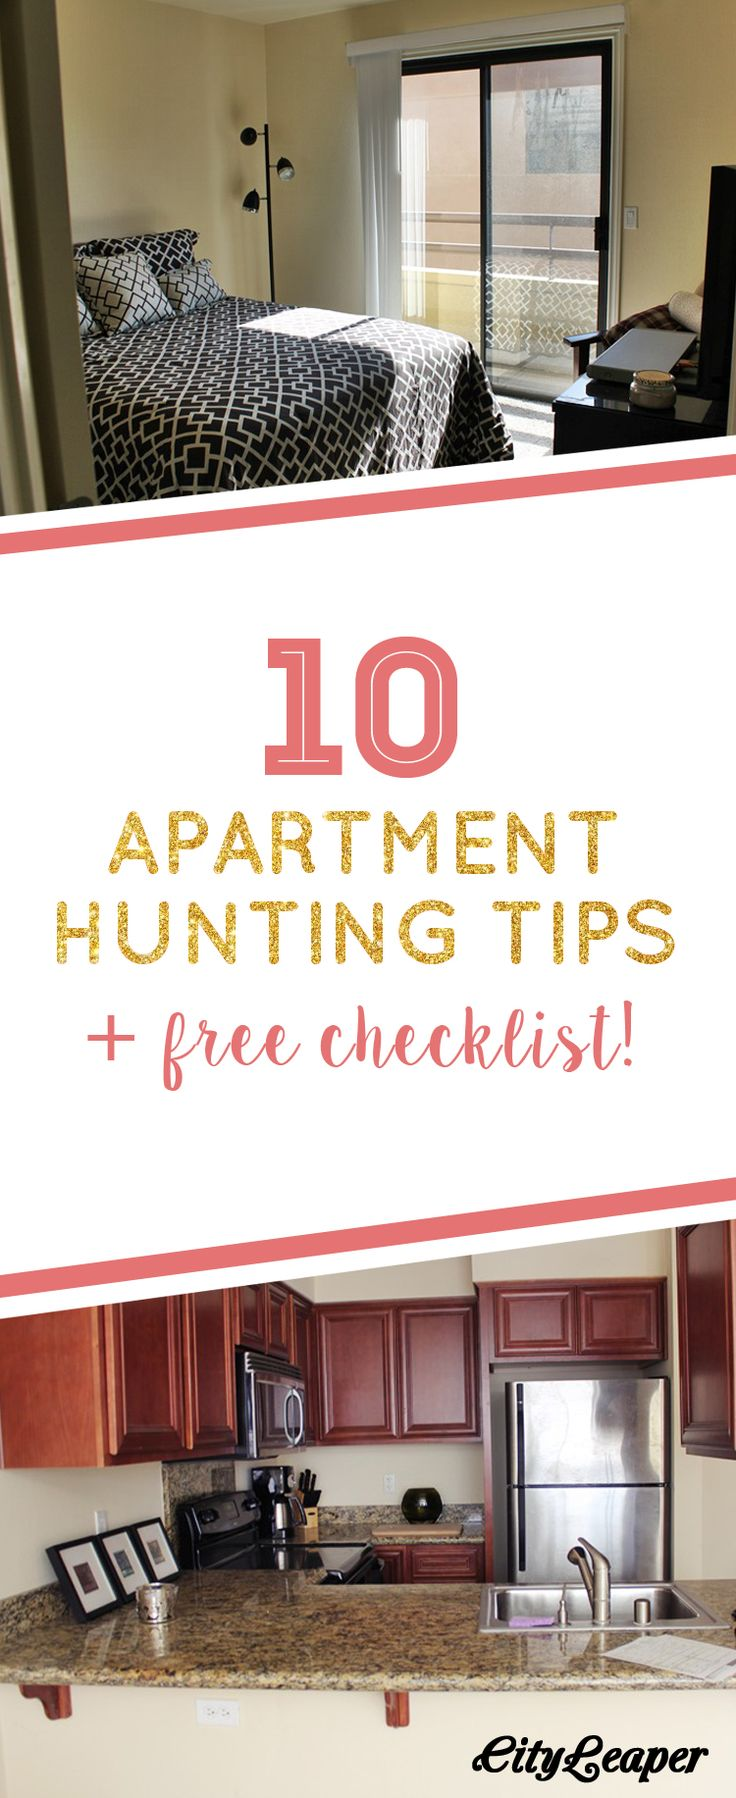 You need these 10 Apartment Hunting Tips before you move in to your dream place! Plus, download our printable checklist to help you decide which apartment is the best fit for you.